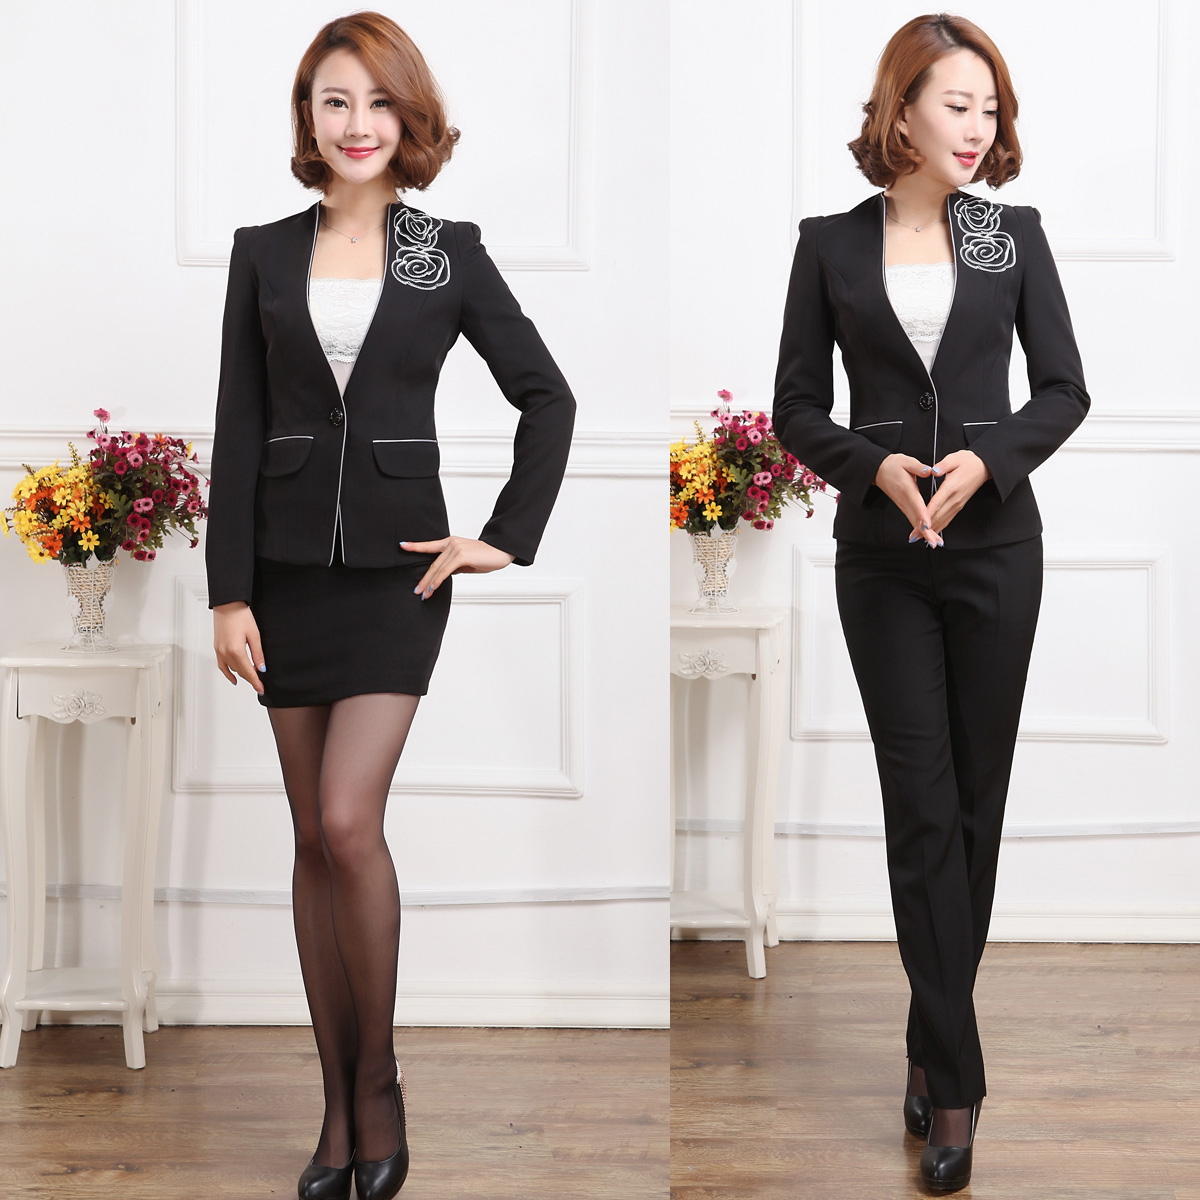 D44 slim autumn and winter wear suits ladies suit ladies wear professional dress suit overalls interview female dress